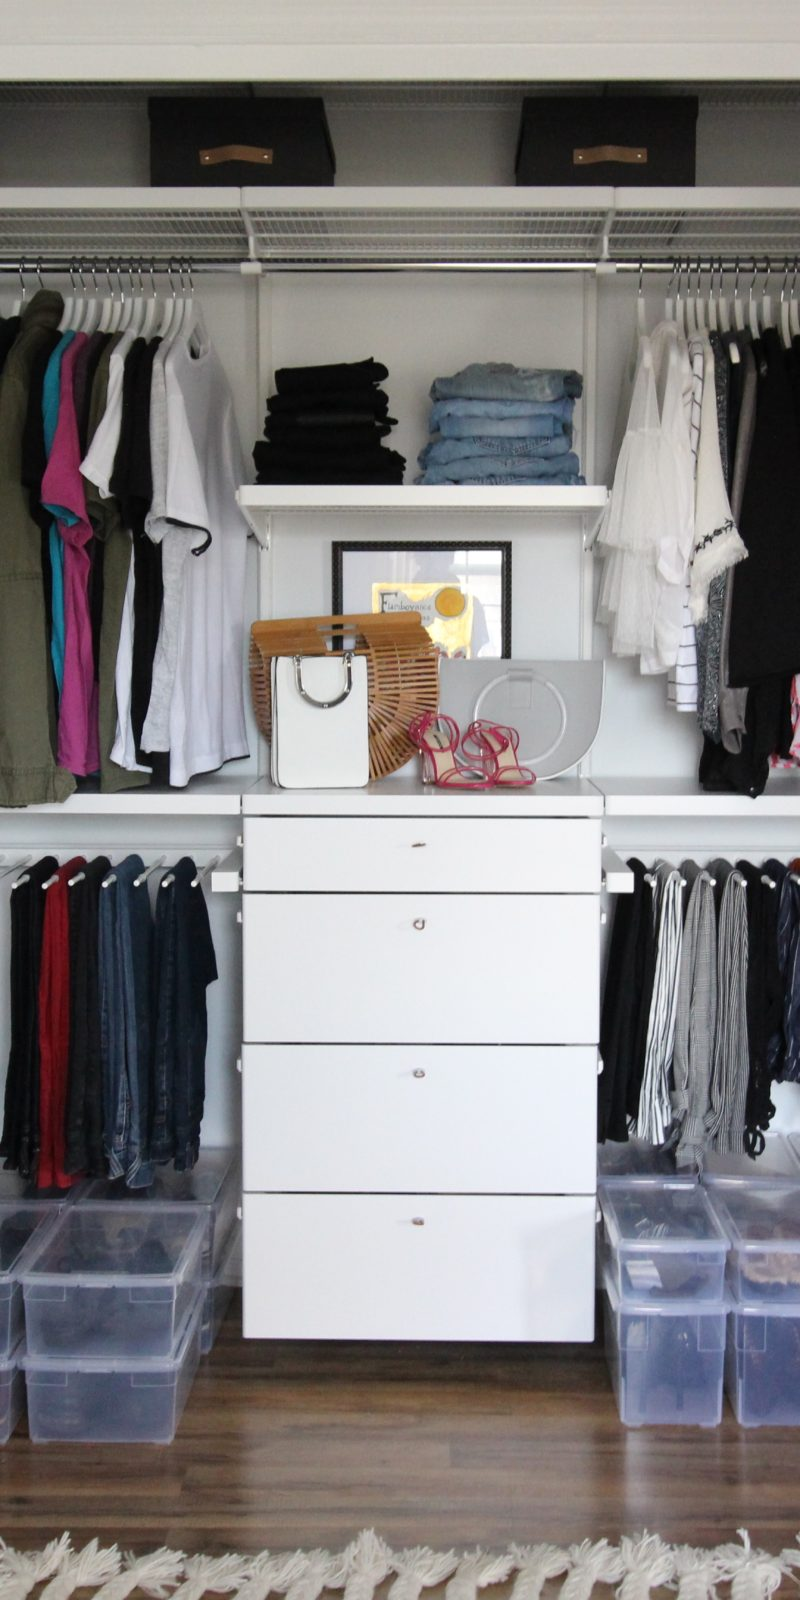 We Just Did A Complete Closet Overhaul And The Container Store Helped Us  Get Super Organized. If Youu0027re Thinking About Redoing Your Closet I Highly  Highly ...